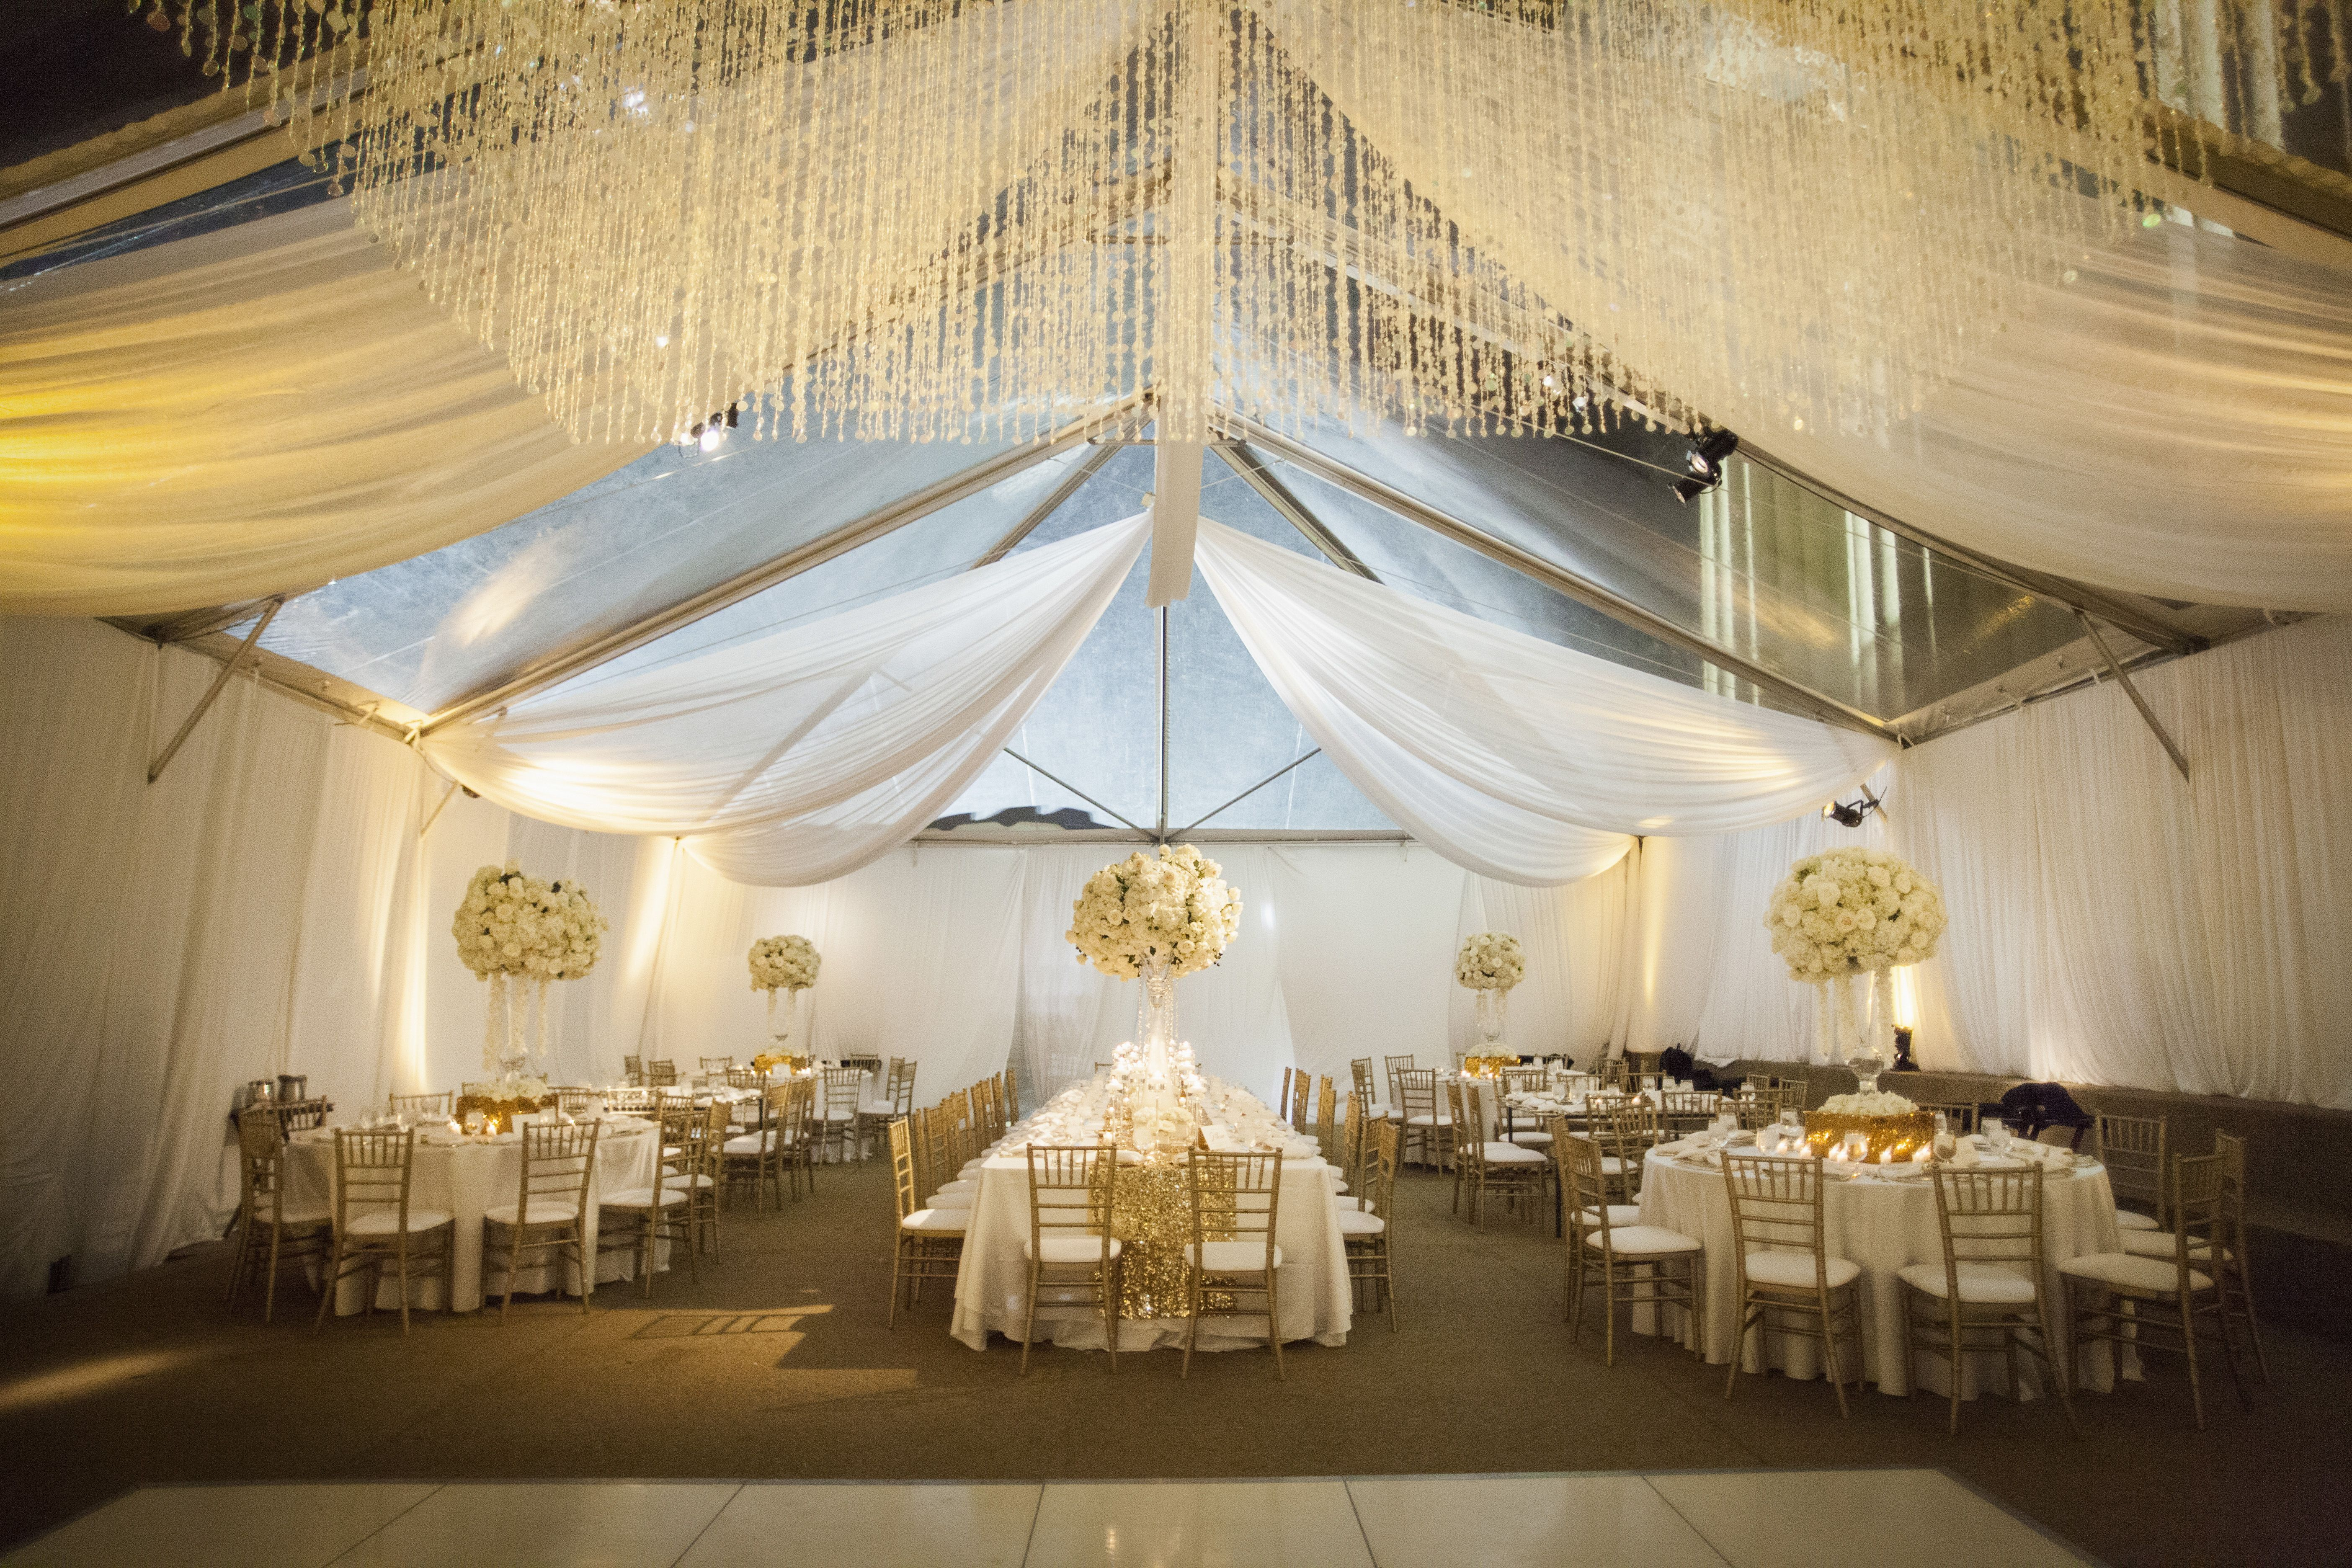 White Flower Ball Centerpieces And Draping Weddings In Gold